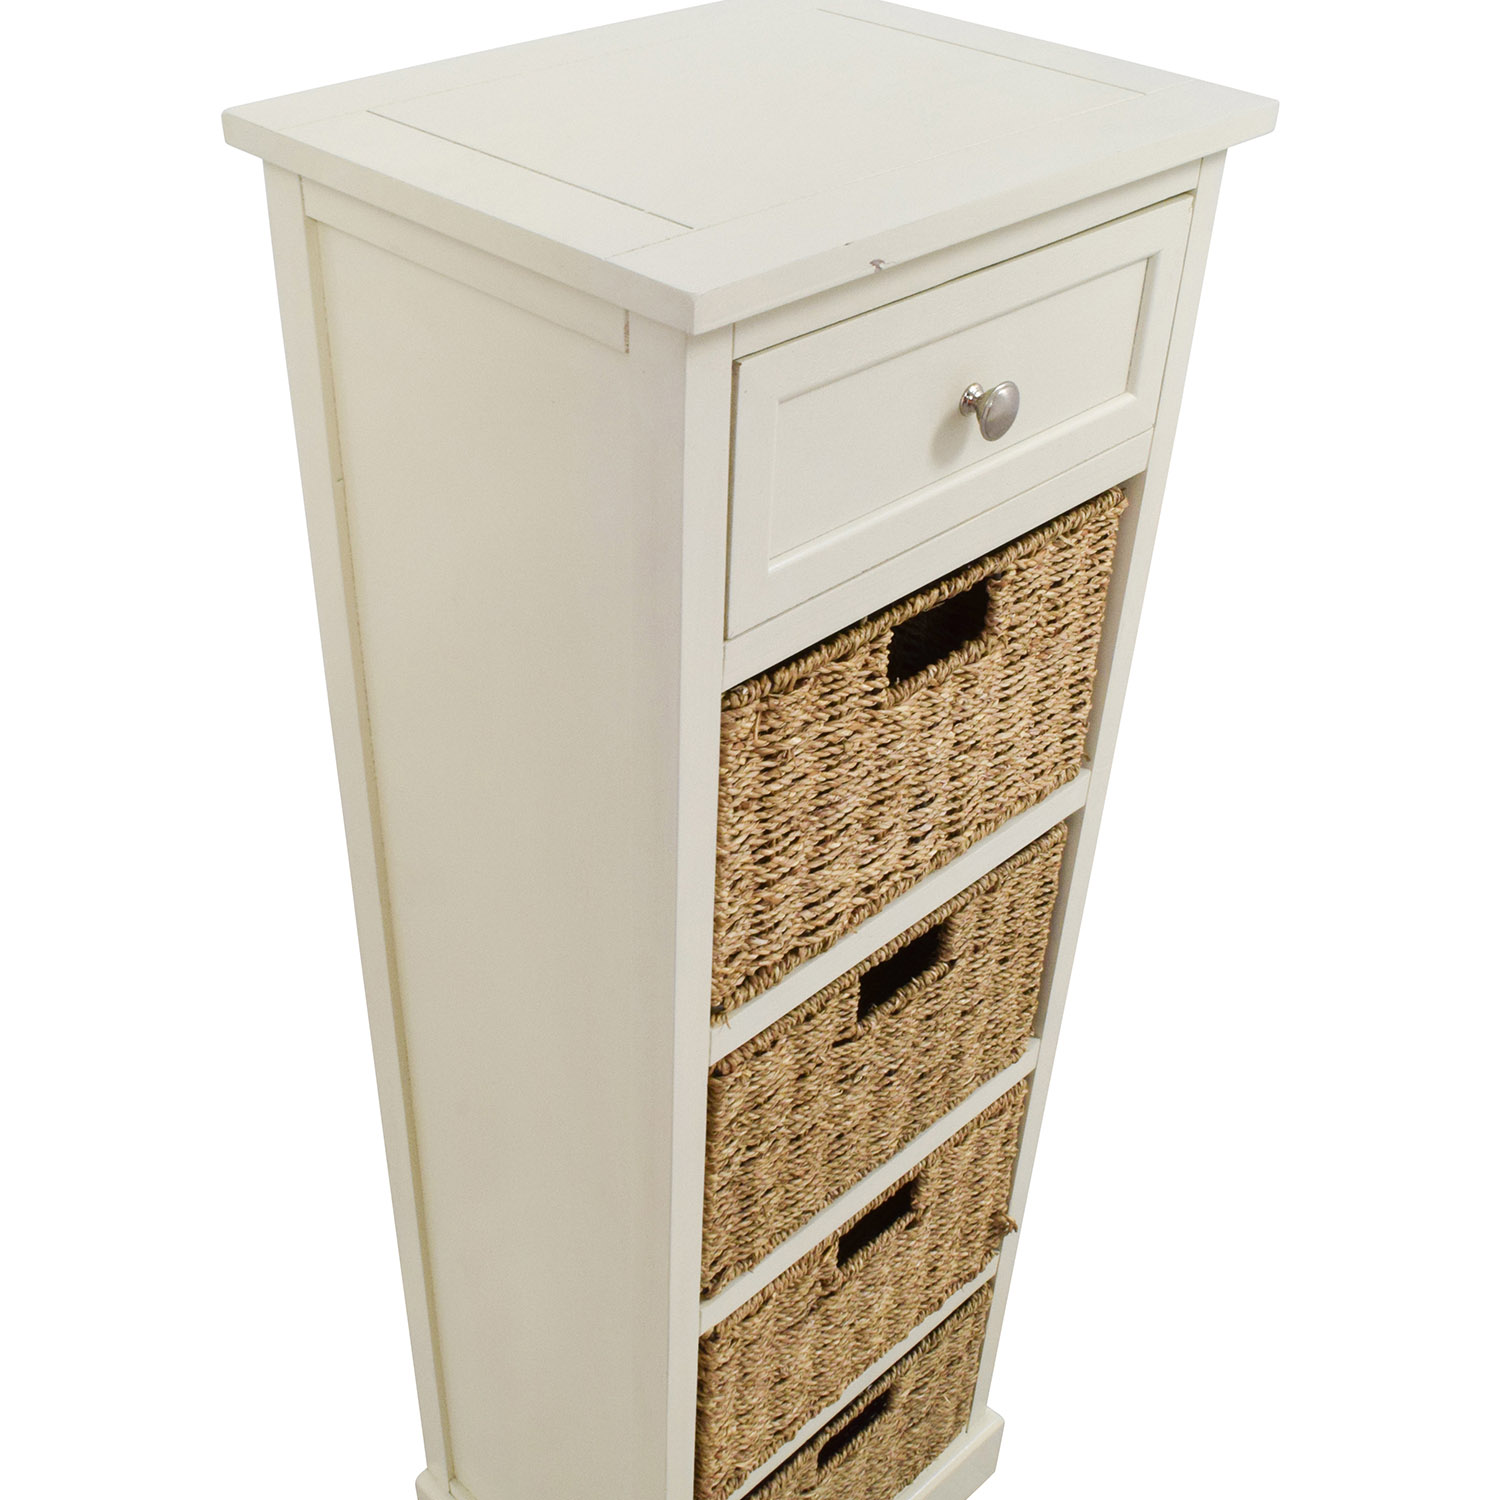 28 Off Tall White Storage Unit With Drawer And Wicker Baskets Storage